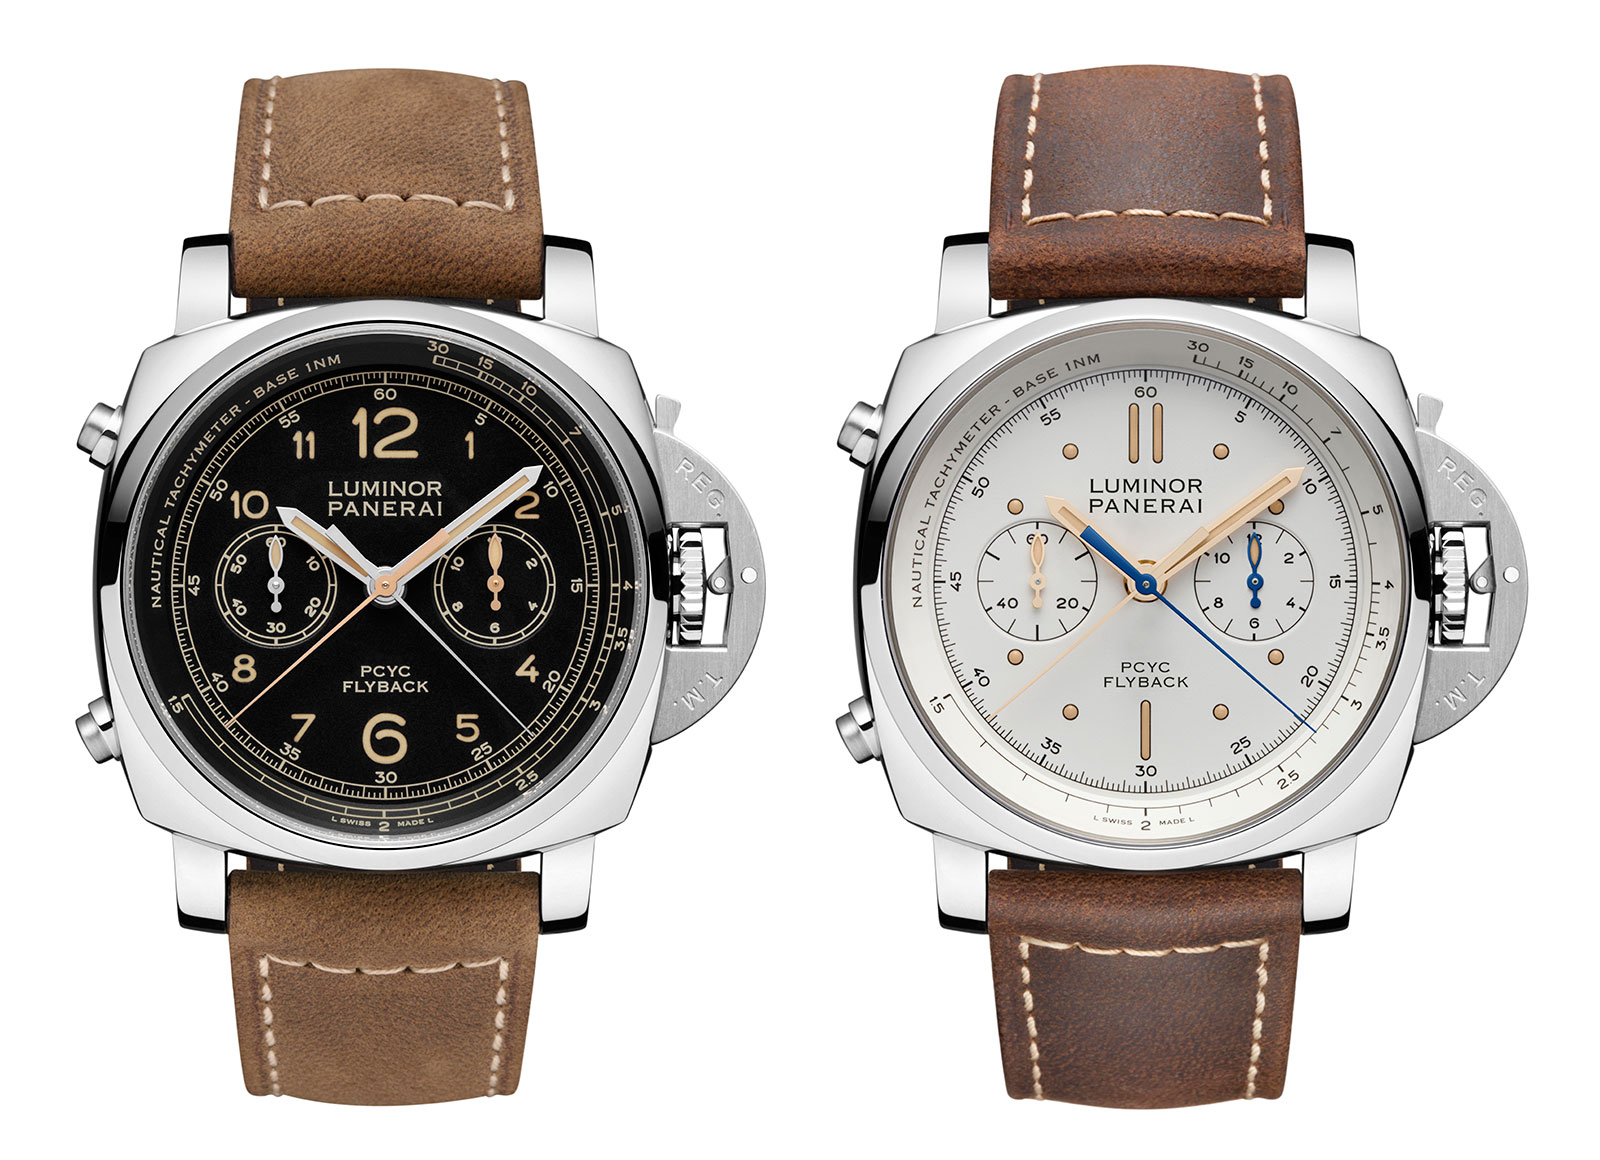 Panerai Luminor 1950 PCYC Chrono Flyback